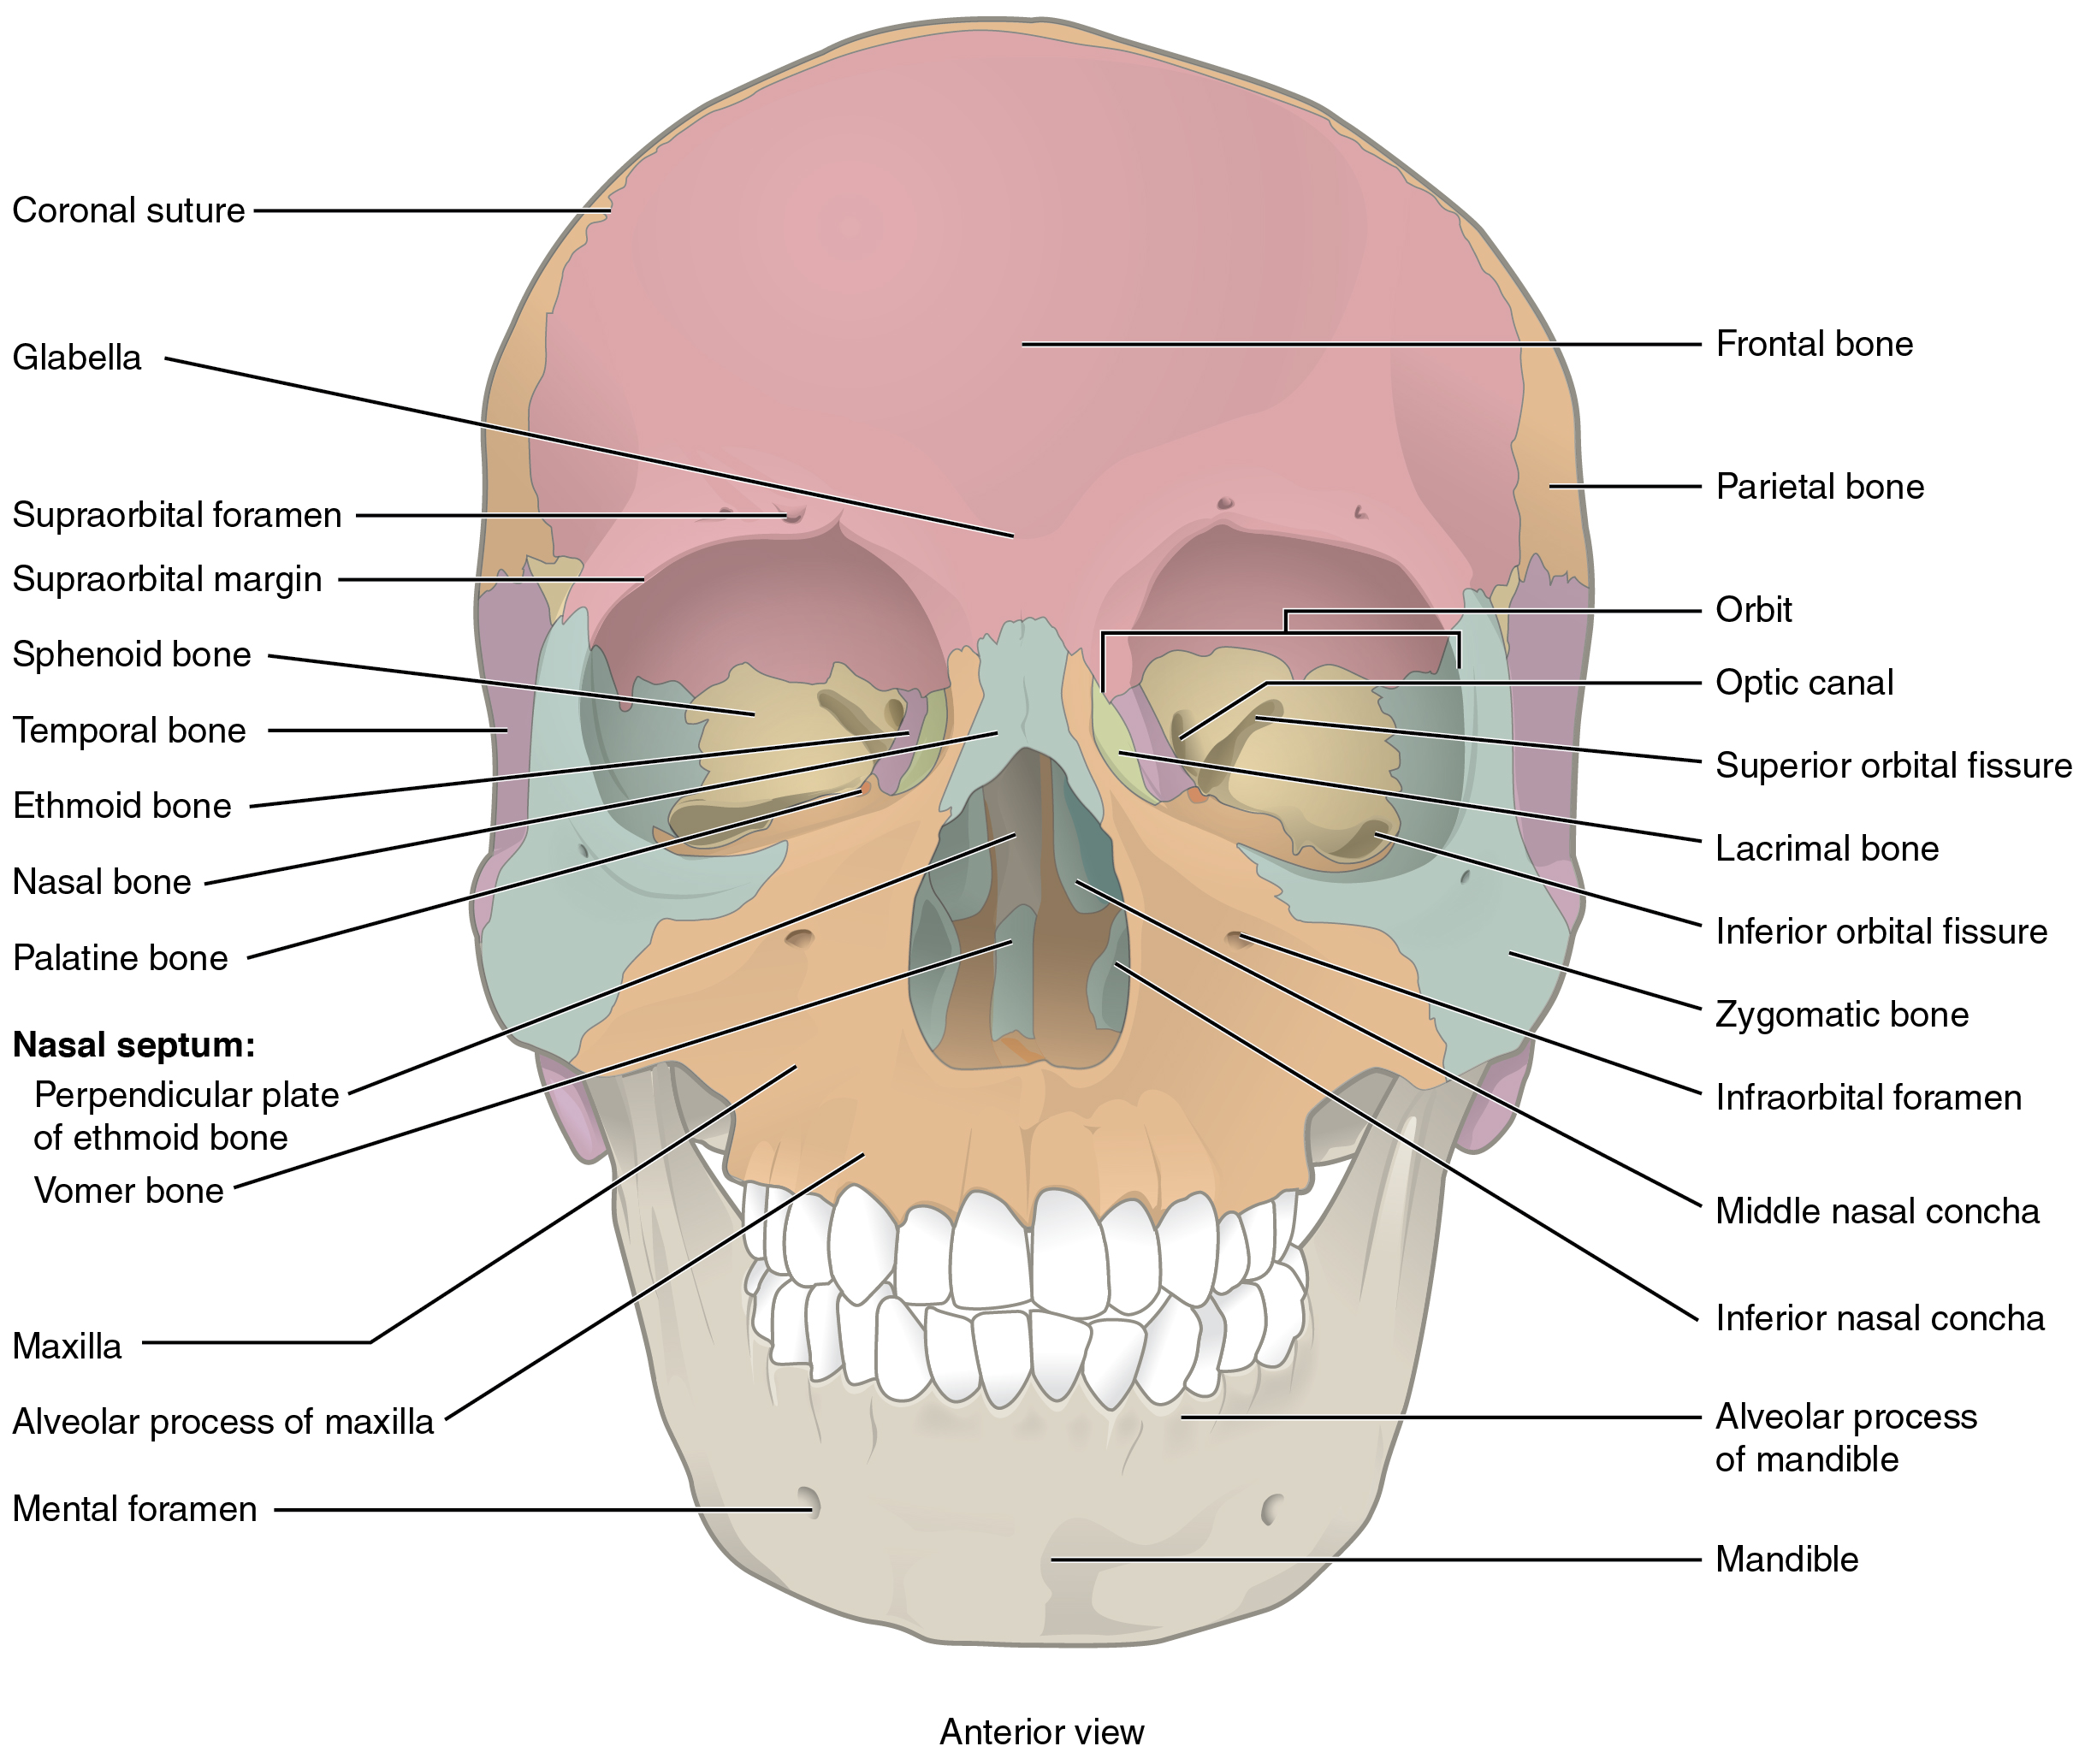 7 2 the skull \u2013 anatomy and physiology Facial Skeleton Diagram this image shows the anterior view (from the front) of the human skull